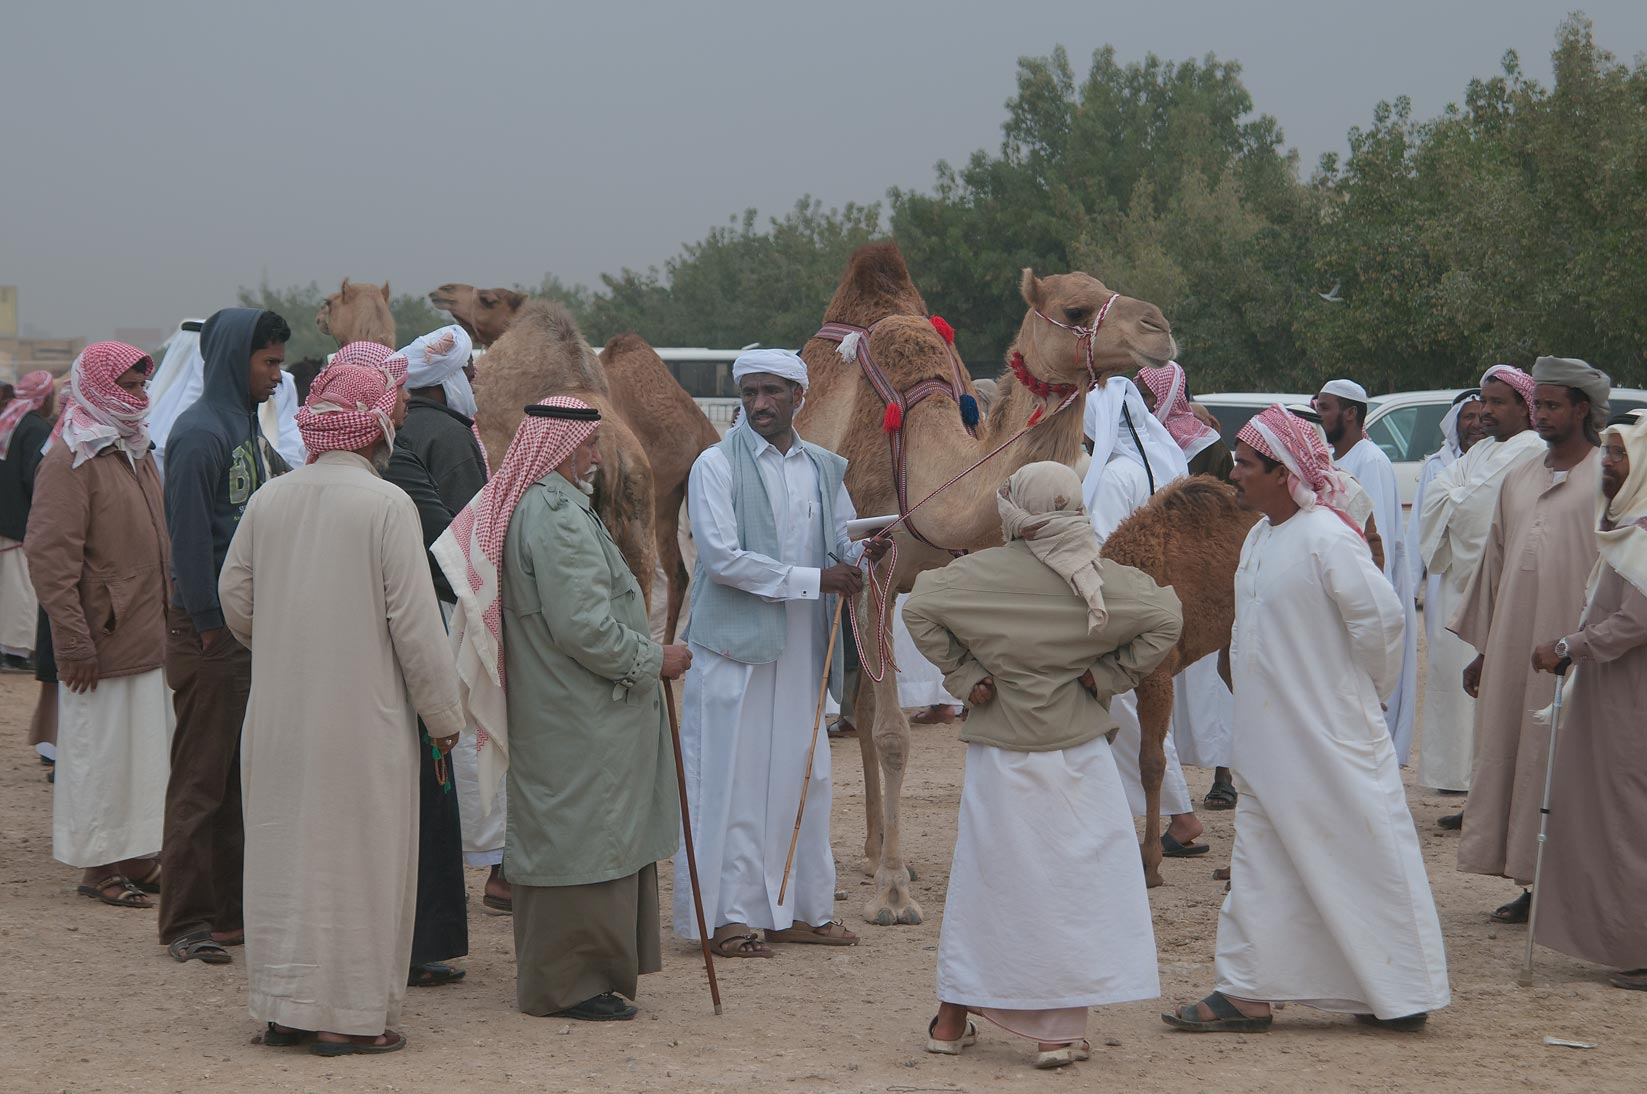 Showing a camel in Camel Market (Souq), racing section. Doha, Qatar